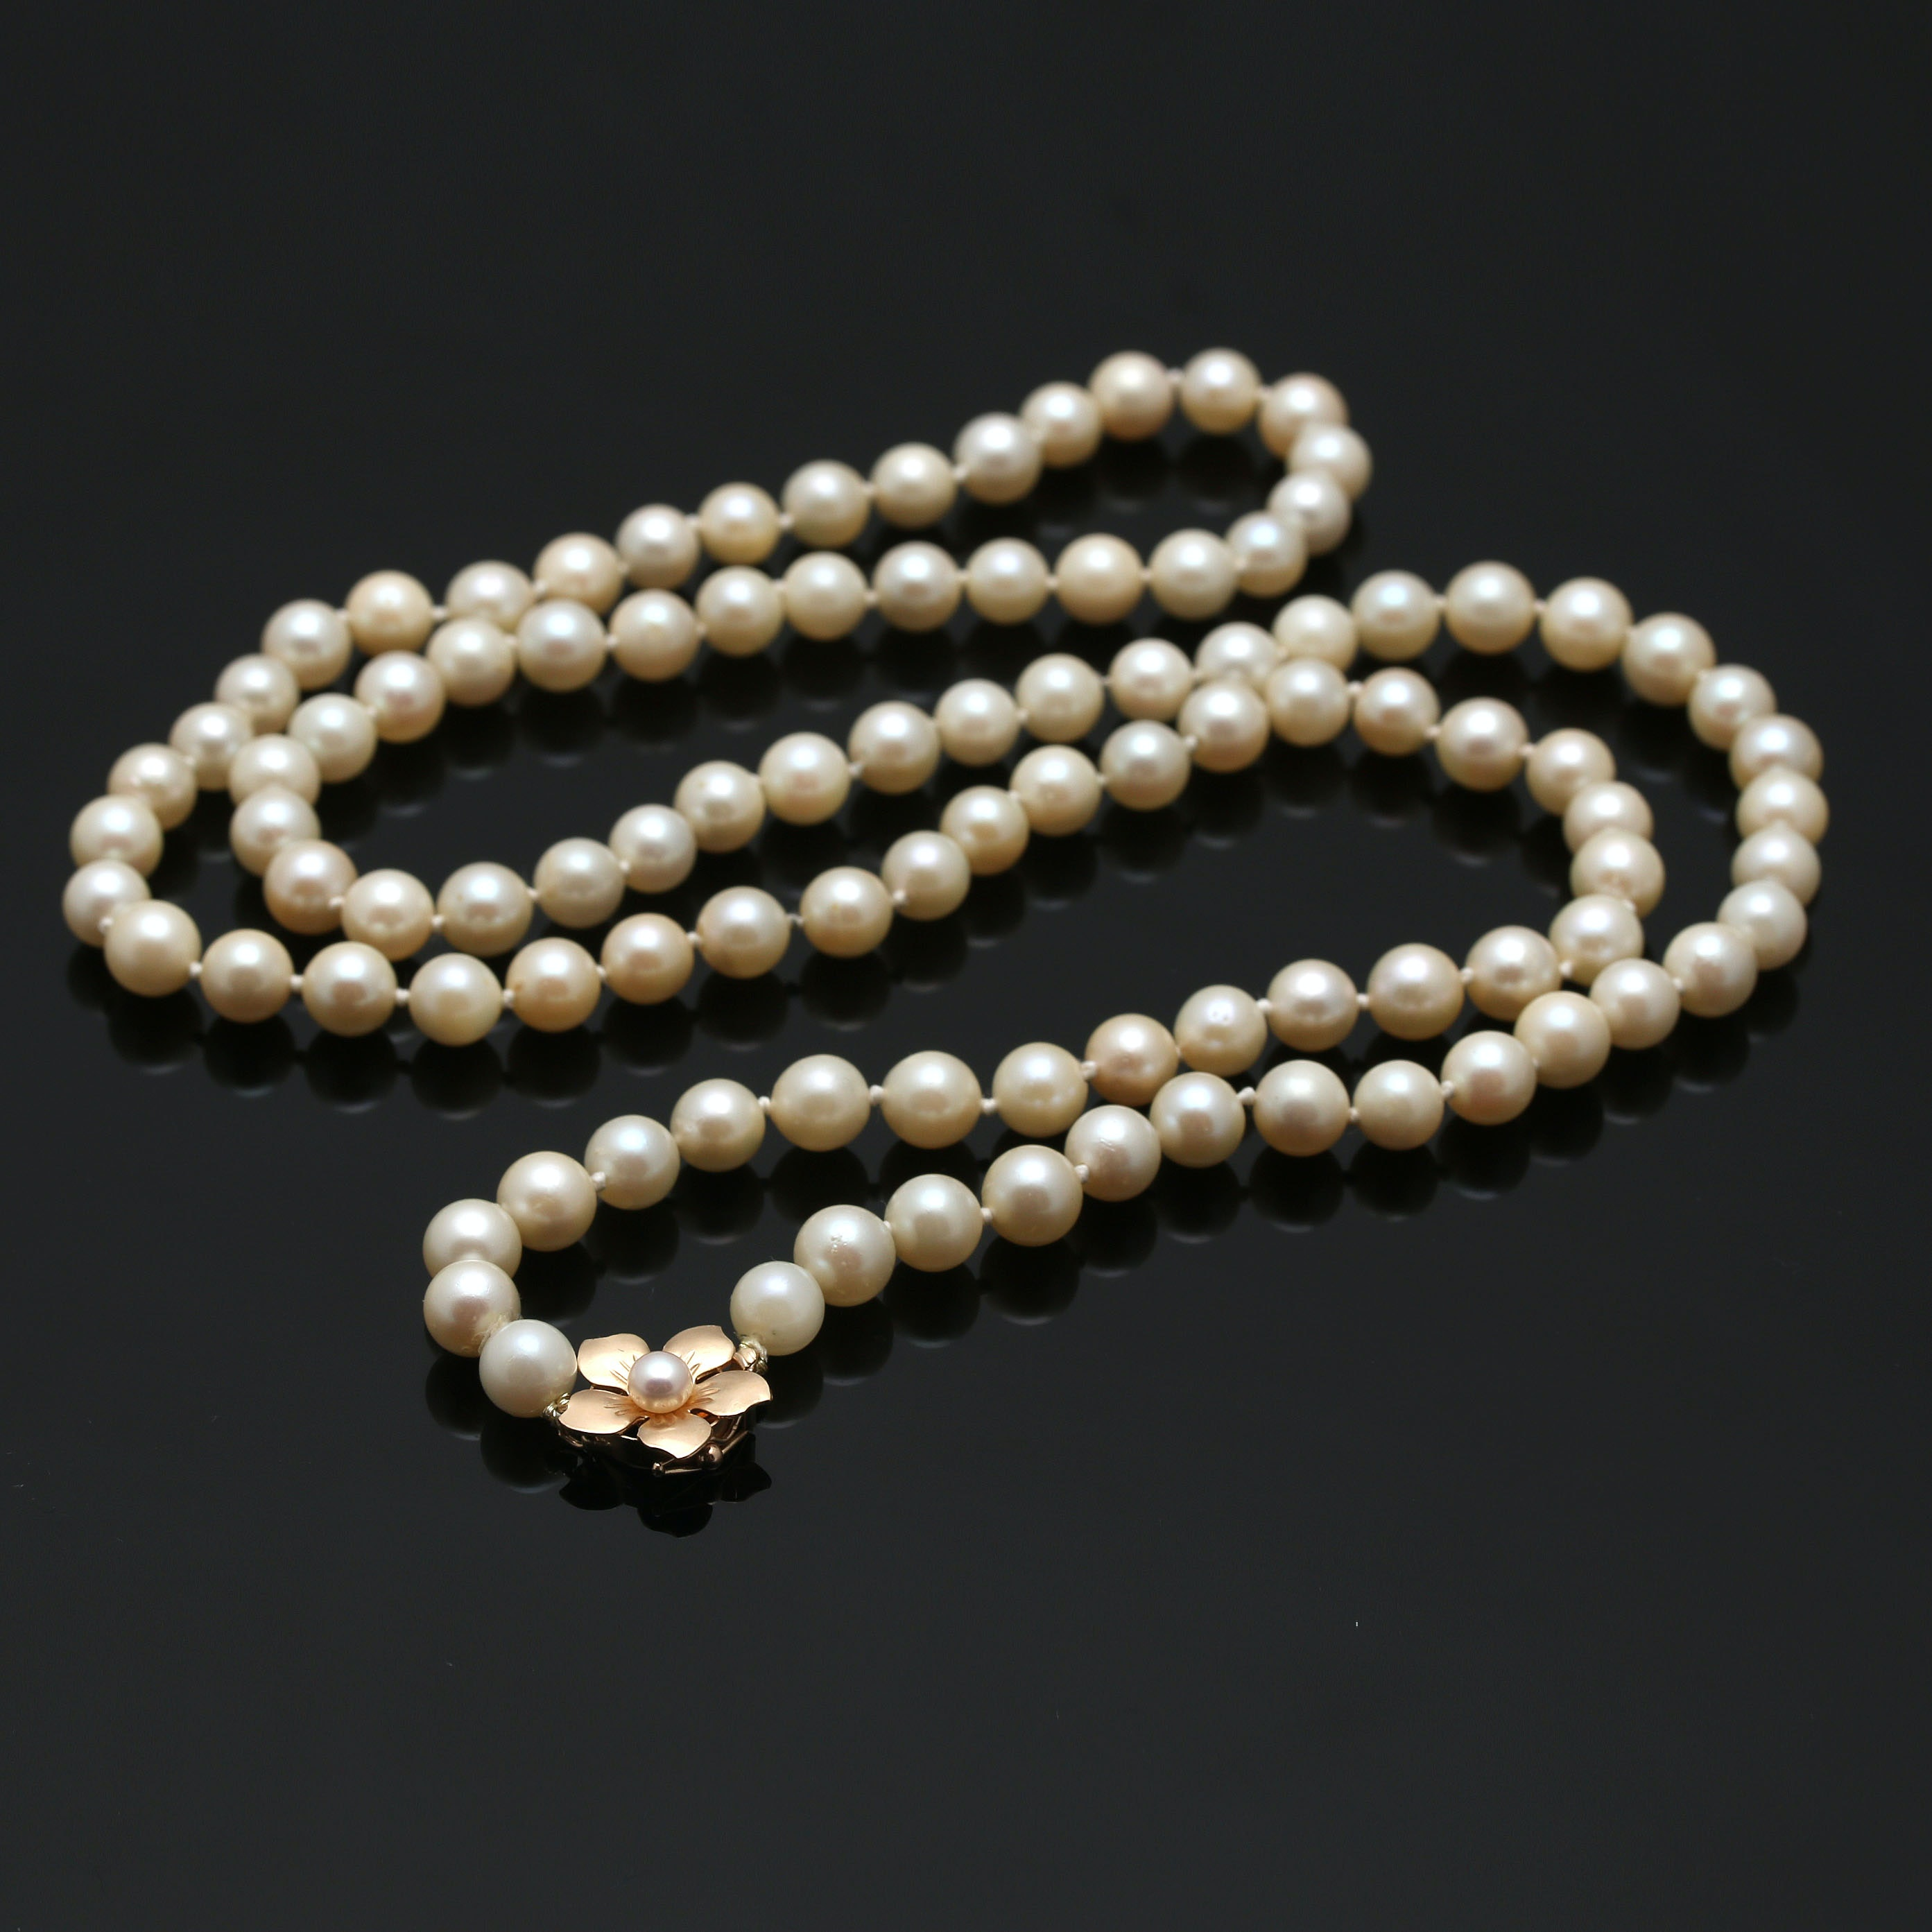 Knotted Cultured Pearl Necklace with 14K Yellow Gold Closure